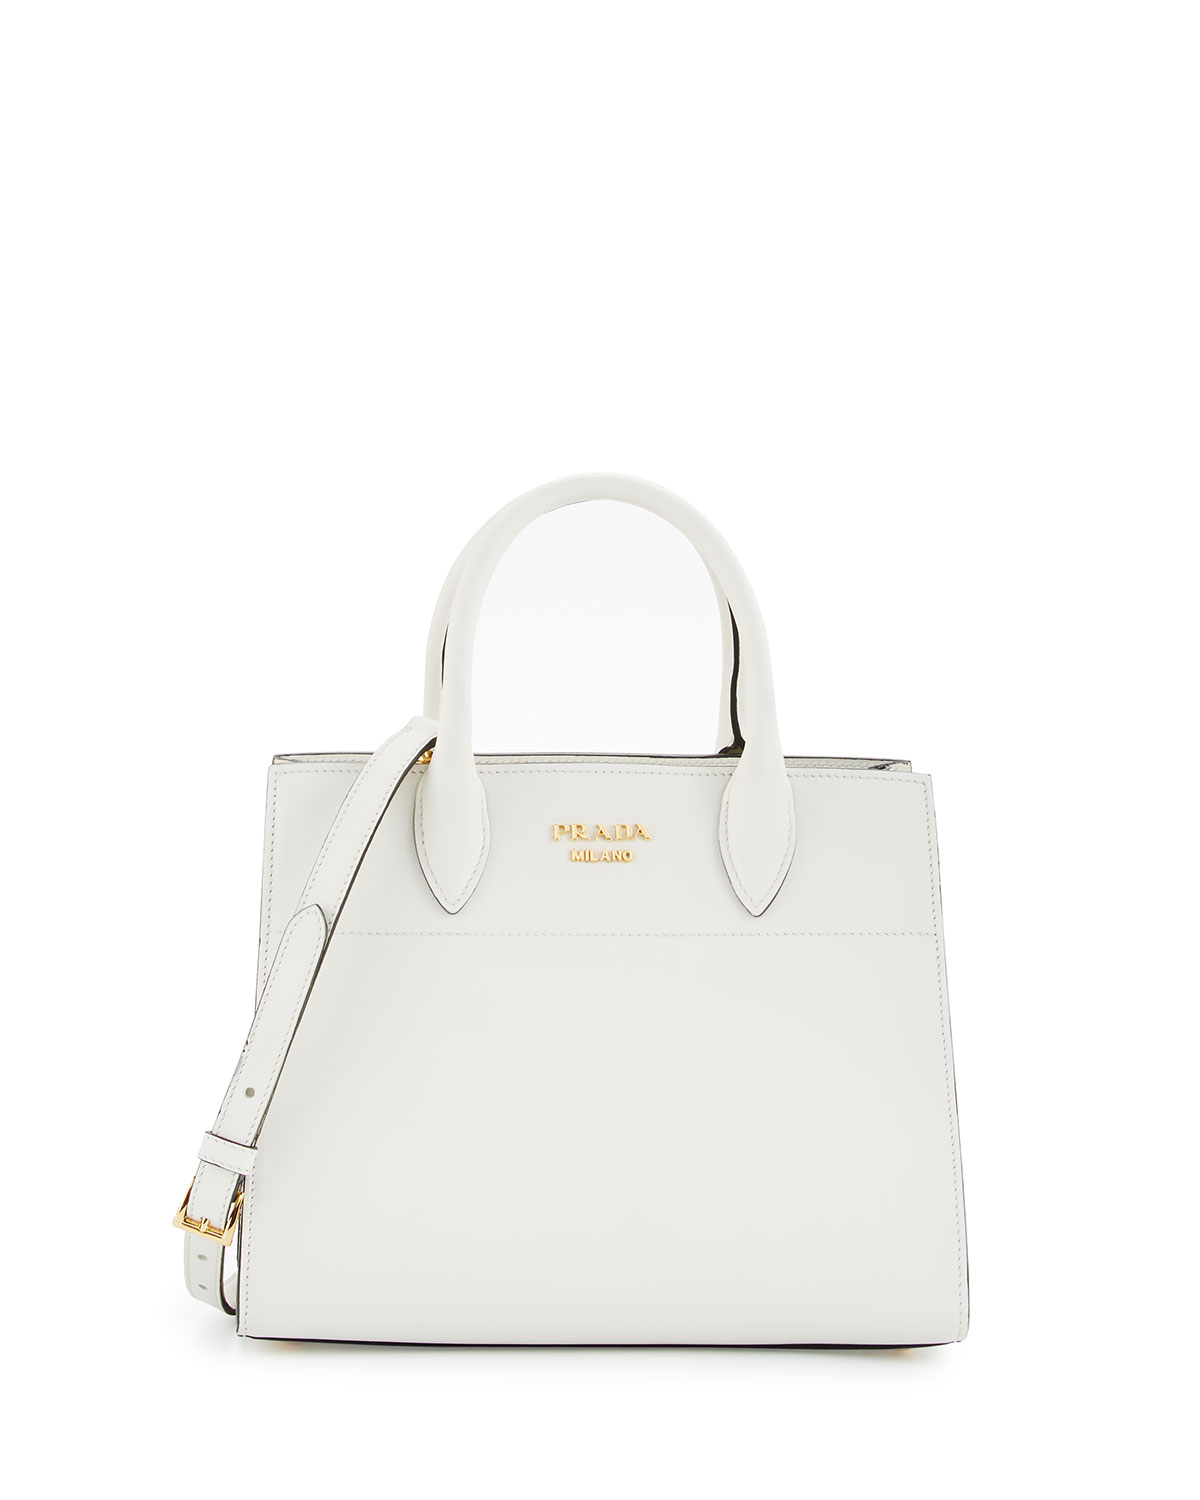 ff2783f9f511 Prada Medium Vitello Daino Open Tote Bag